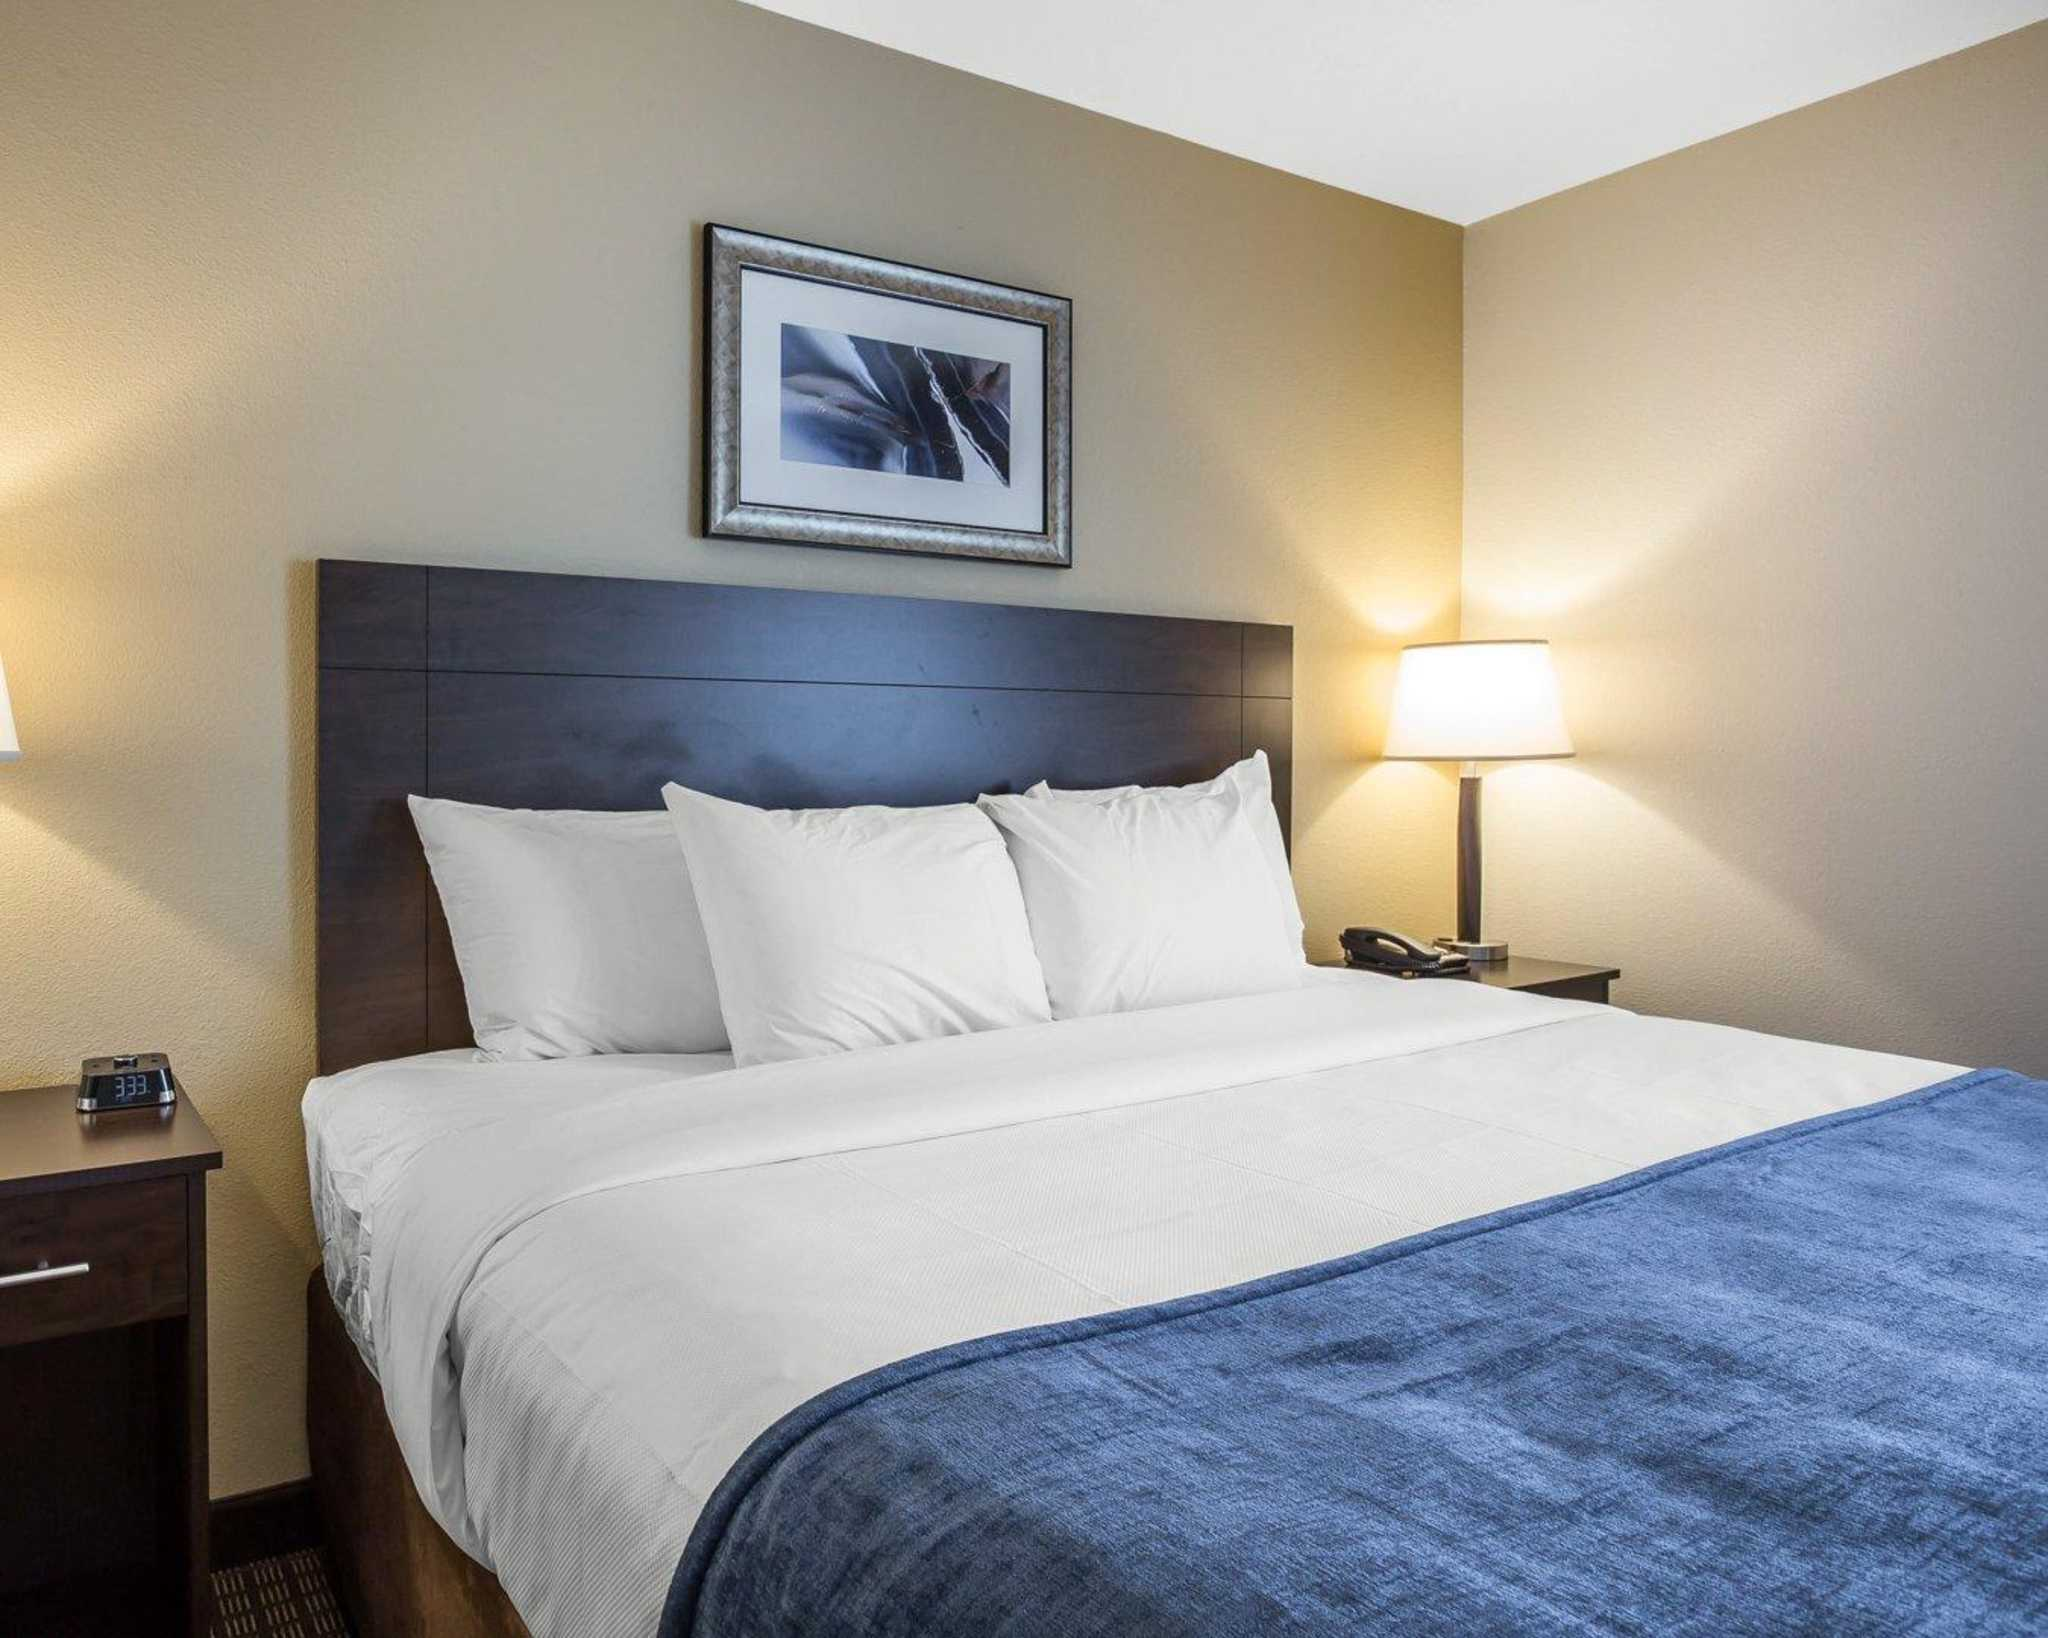 MainStay Suites Cartersville - Emerson Lake Point image 16